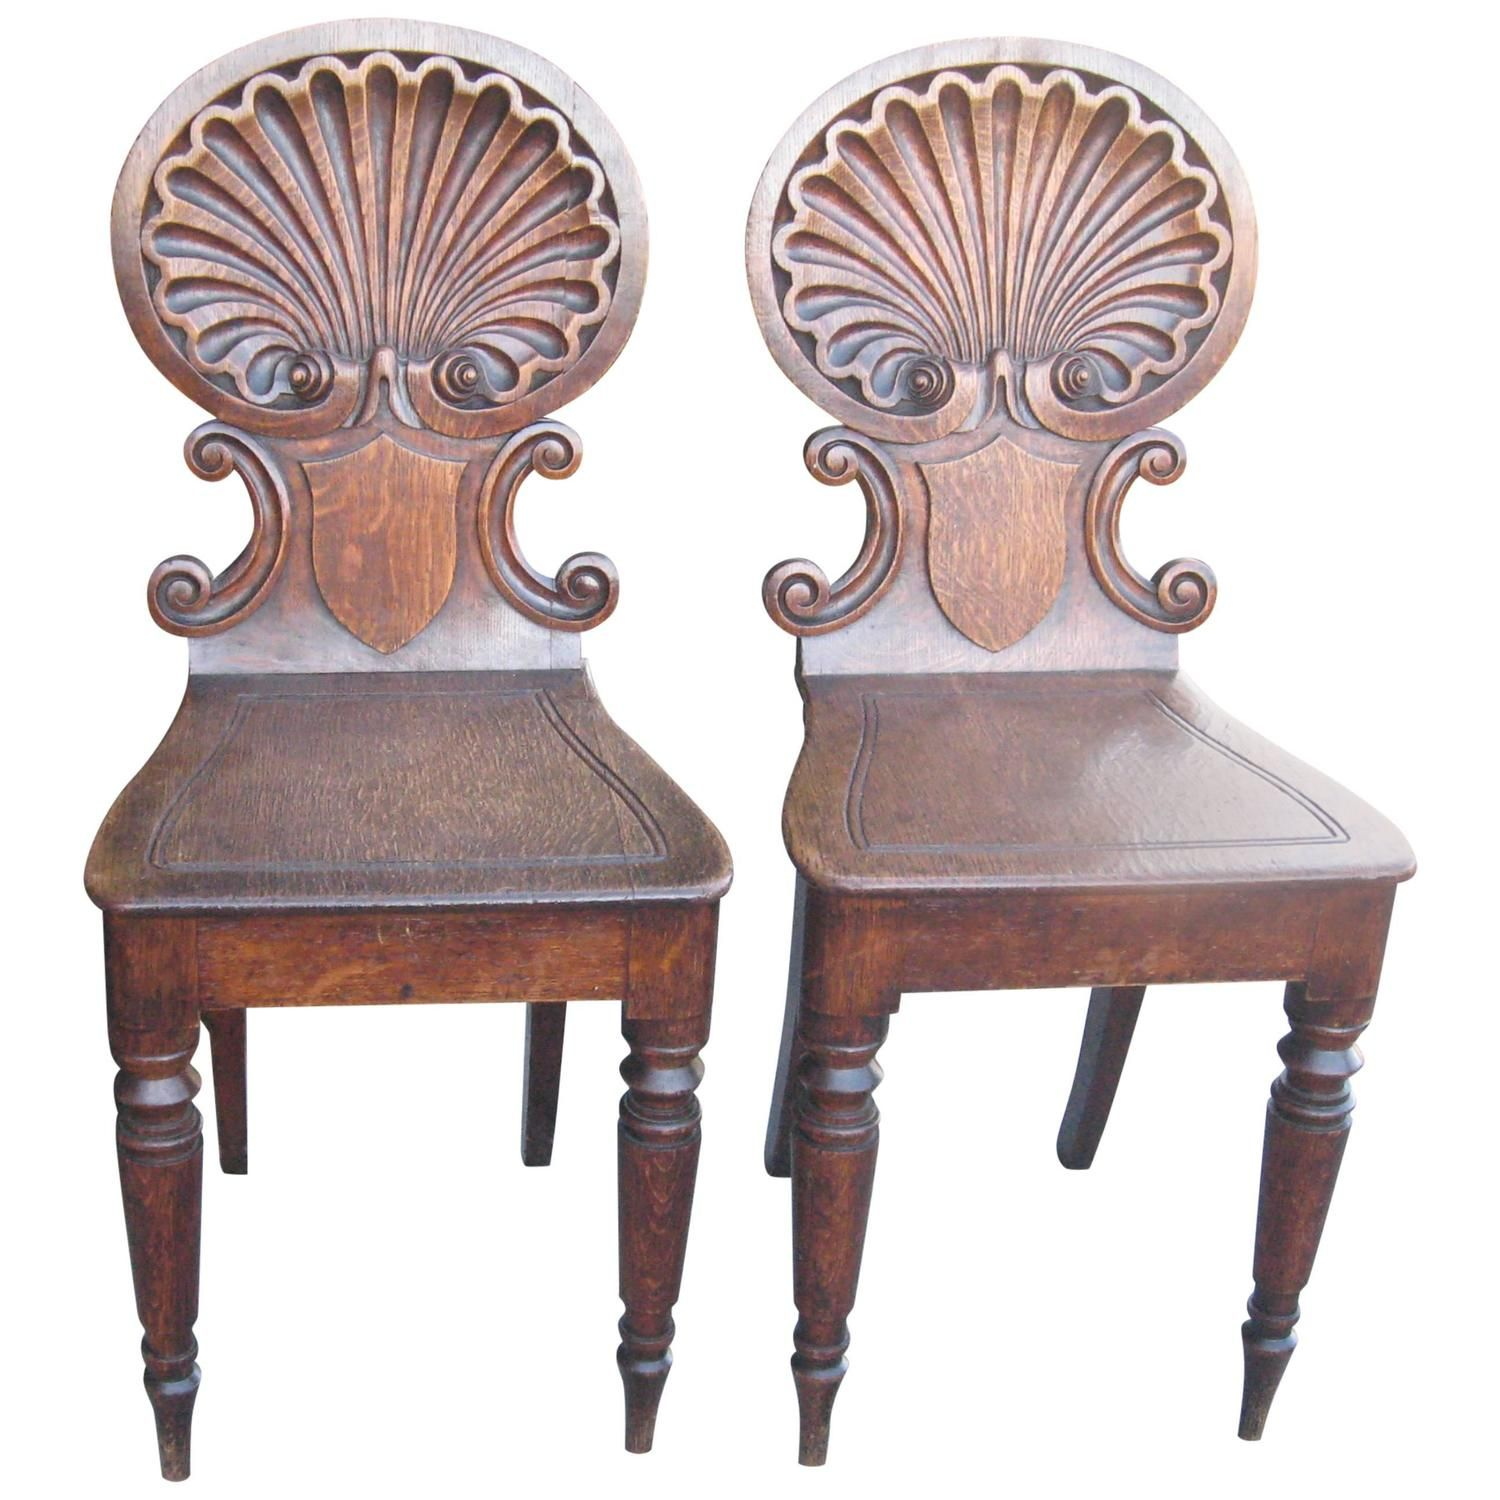 Pair of 19th Century English Oak Shell Back Hall Chairs